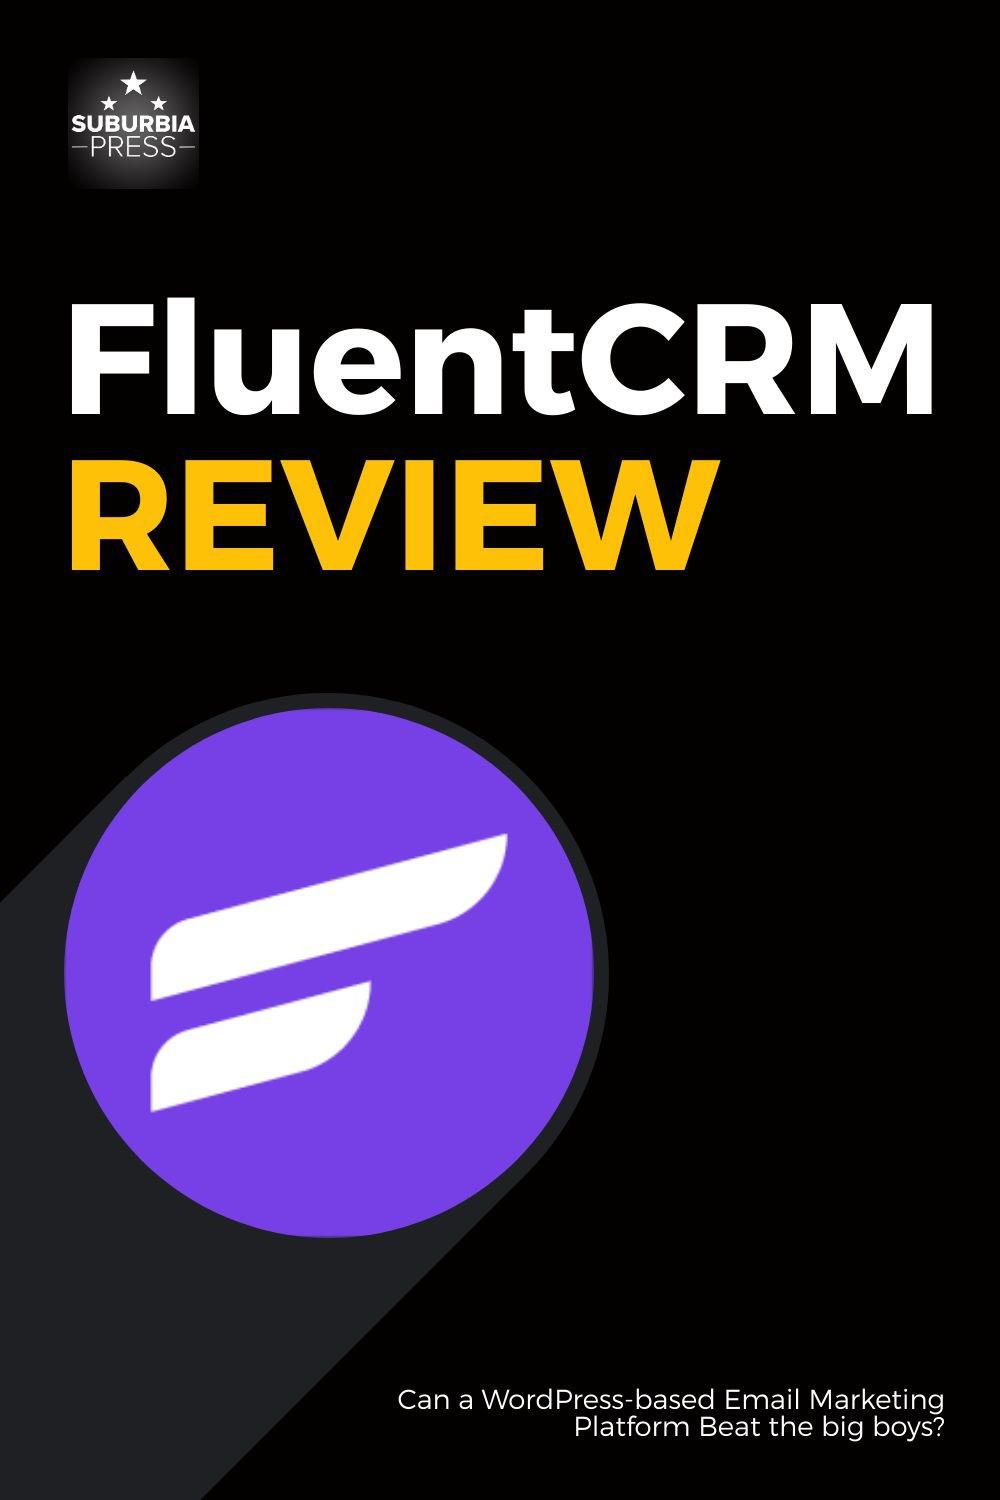 FluentCRM Review - Powerful Email Marketing Automation